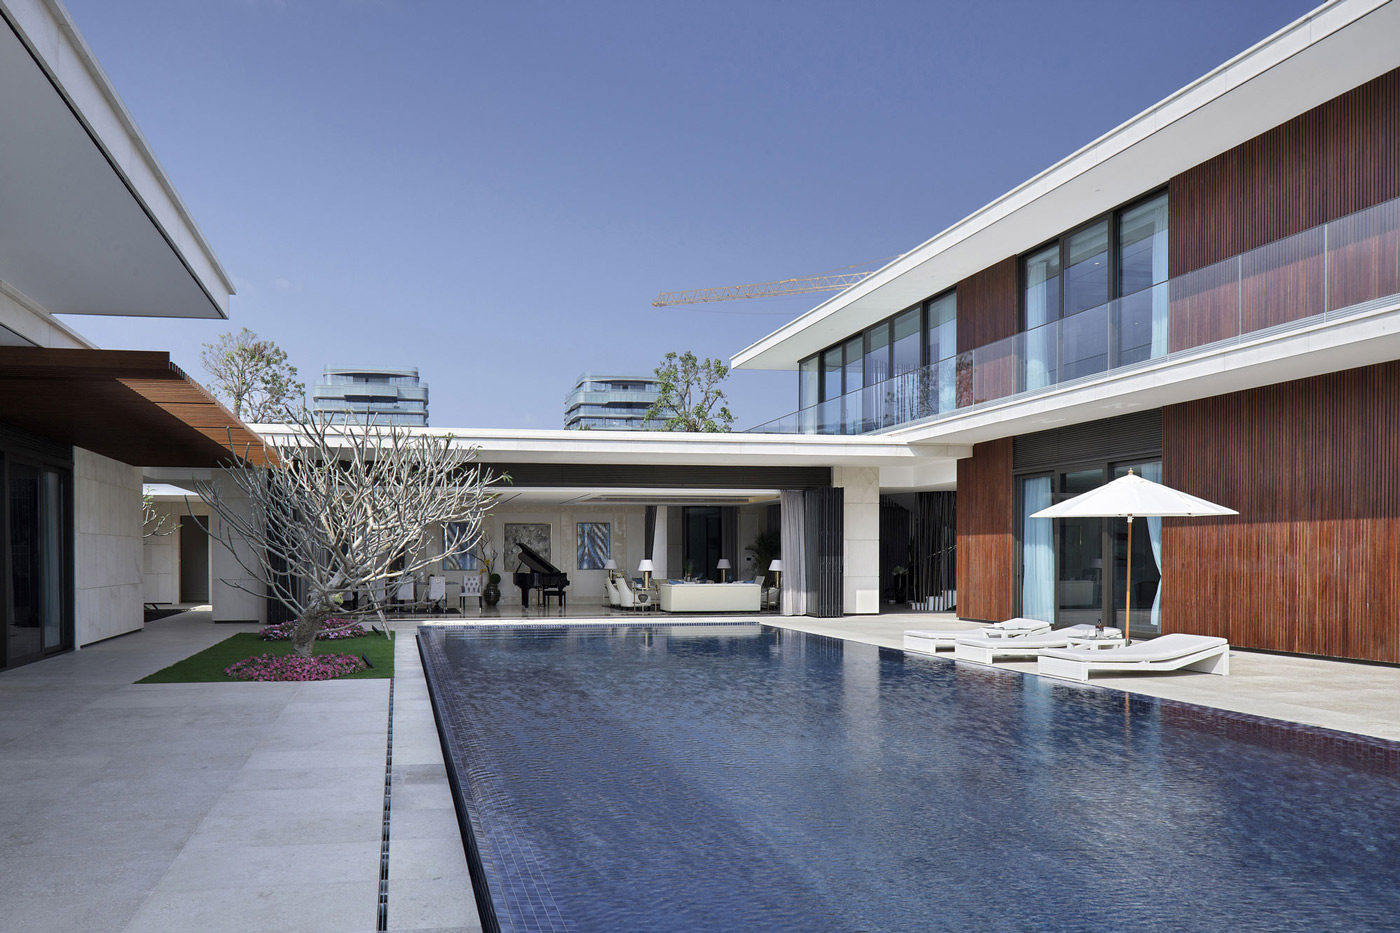 Pool, Terrace, Beachside Villas in Lingshui, Hainan, China